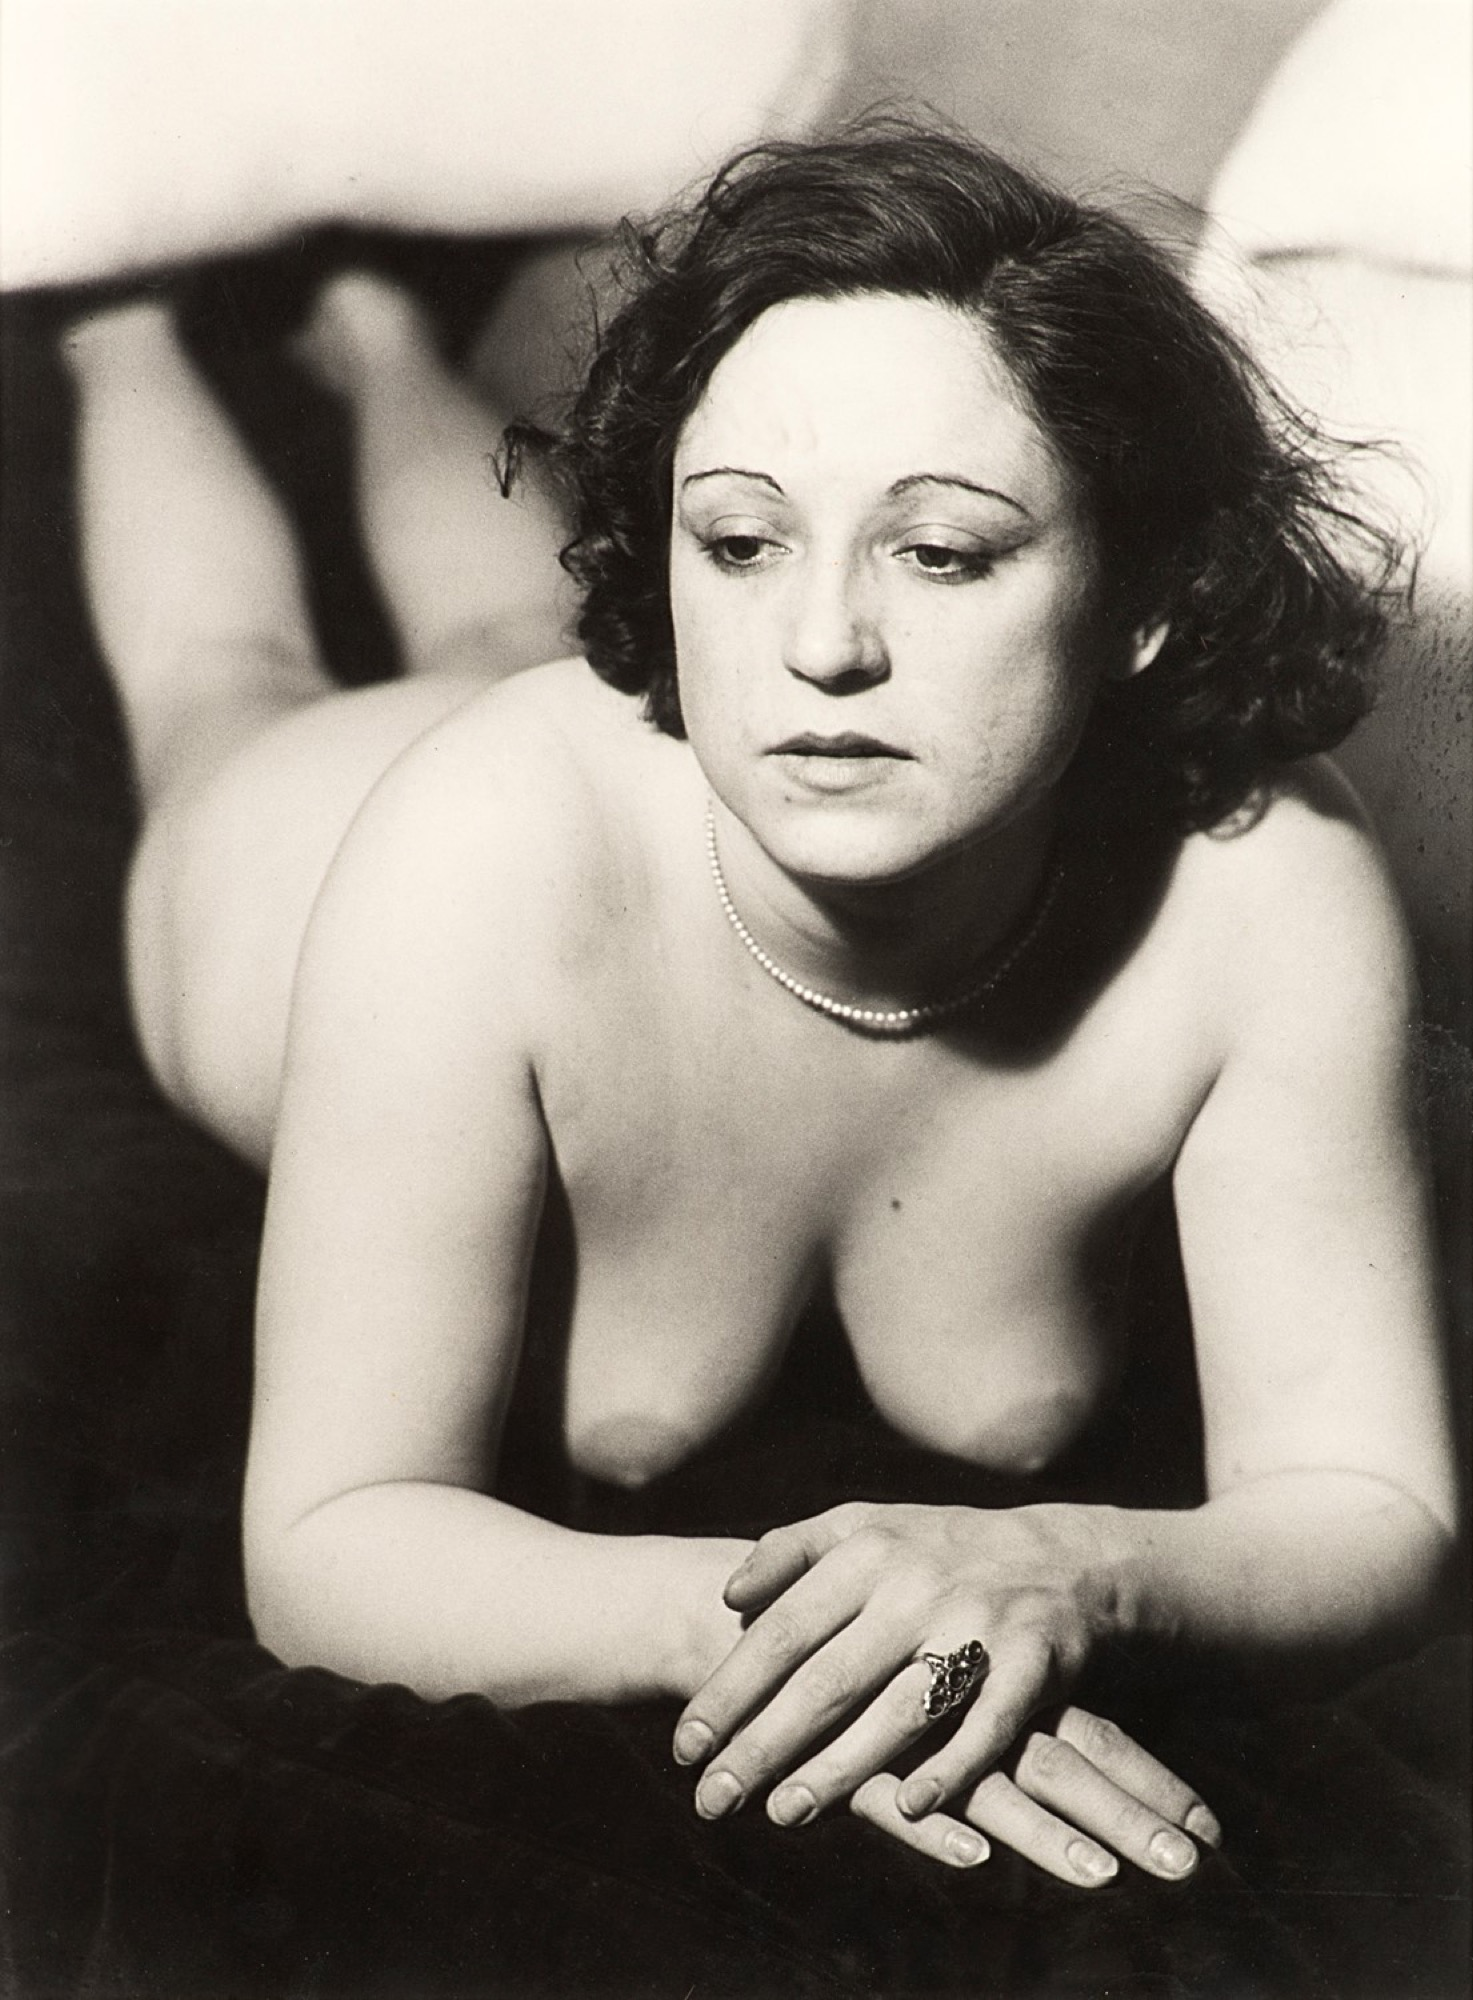 Man Ray (1890-1976) - Femmes, years 1930 - Modern gelatin silver print, printed in [...]